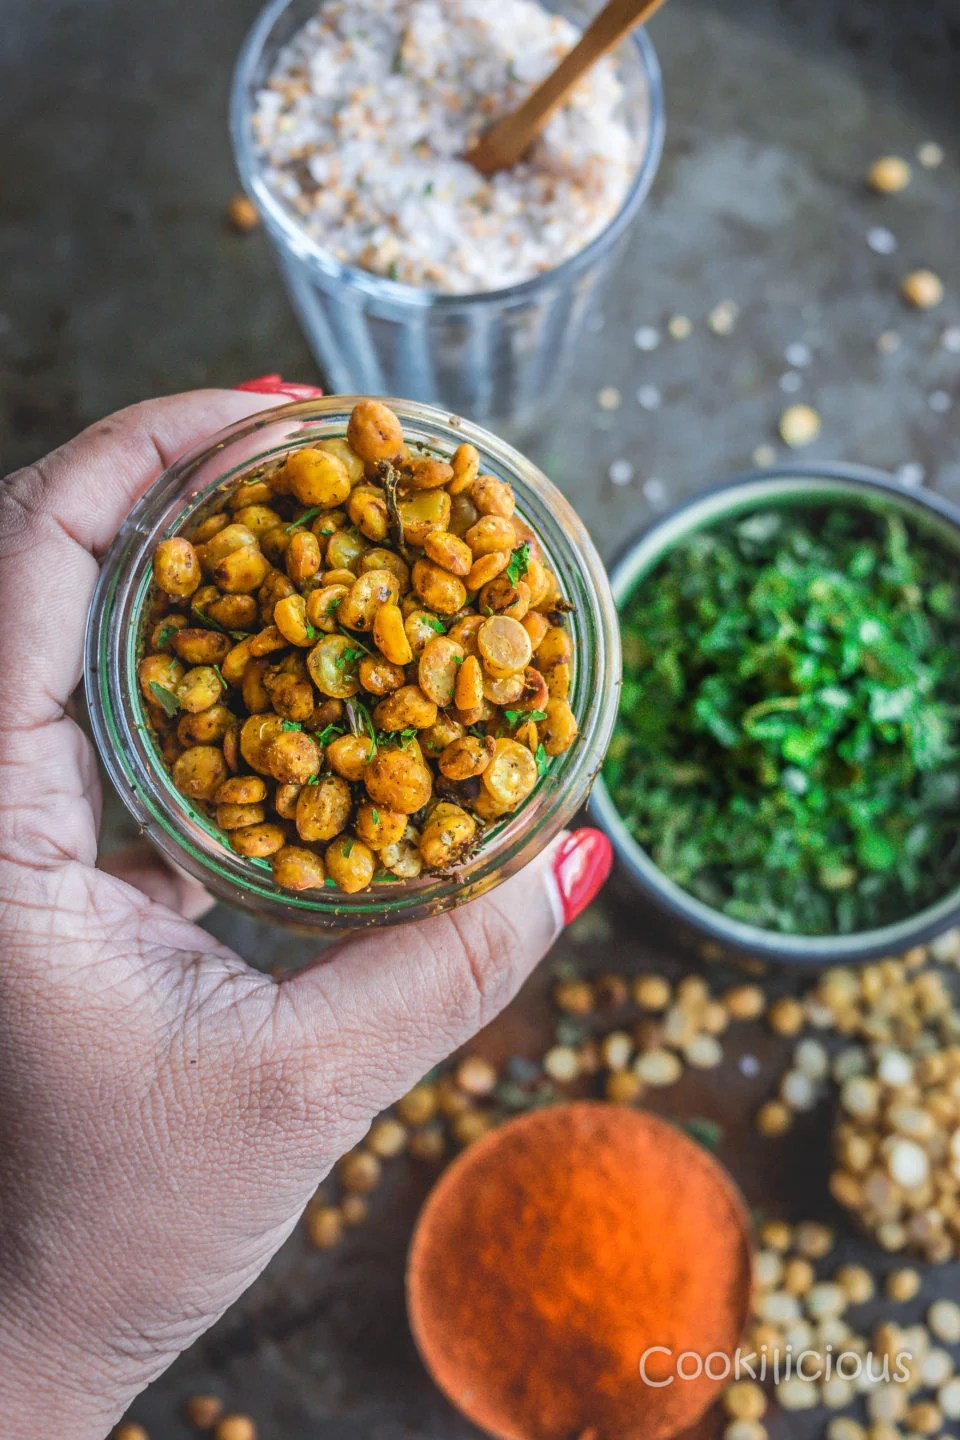 a hand holding a jar filled with Crispy Vegan Split Peas with kasoori methi, paprika and himalayan salt in the background